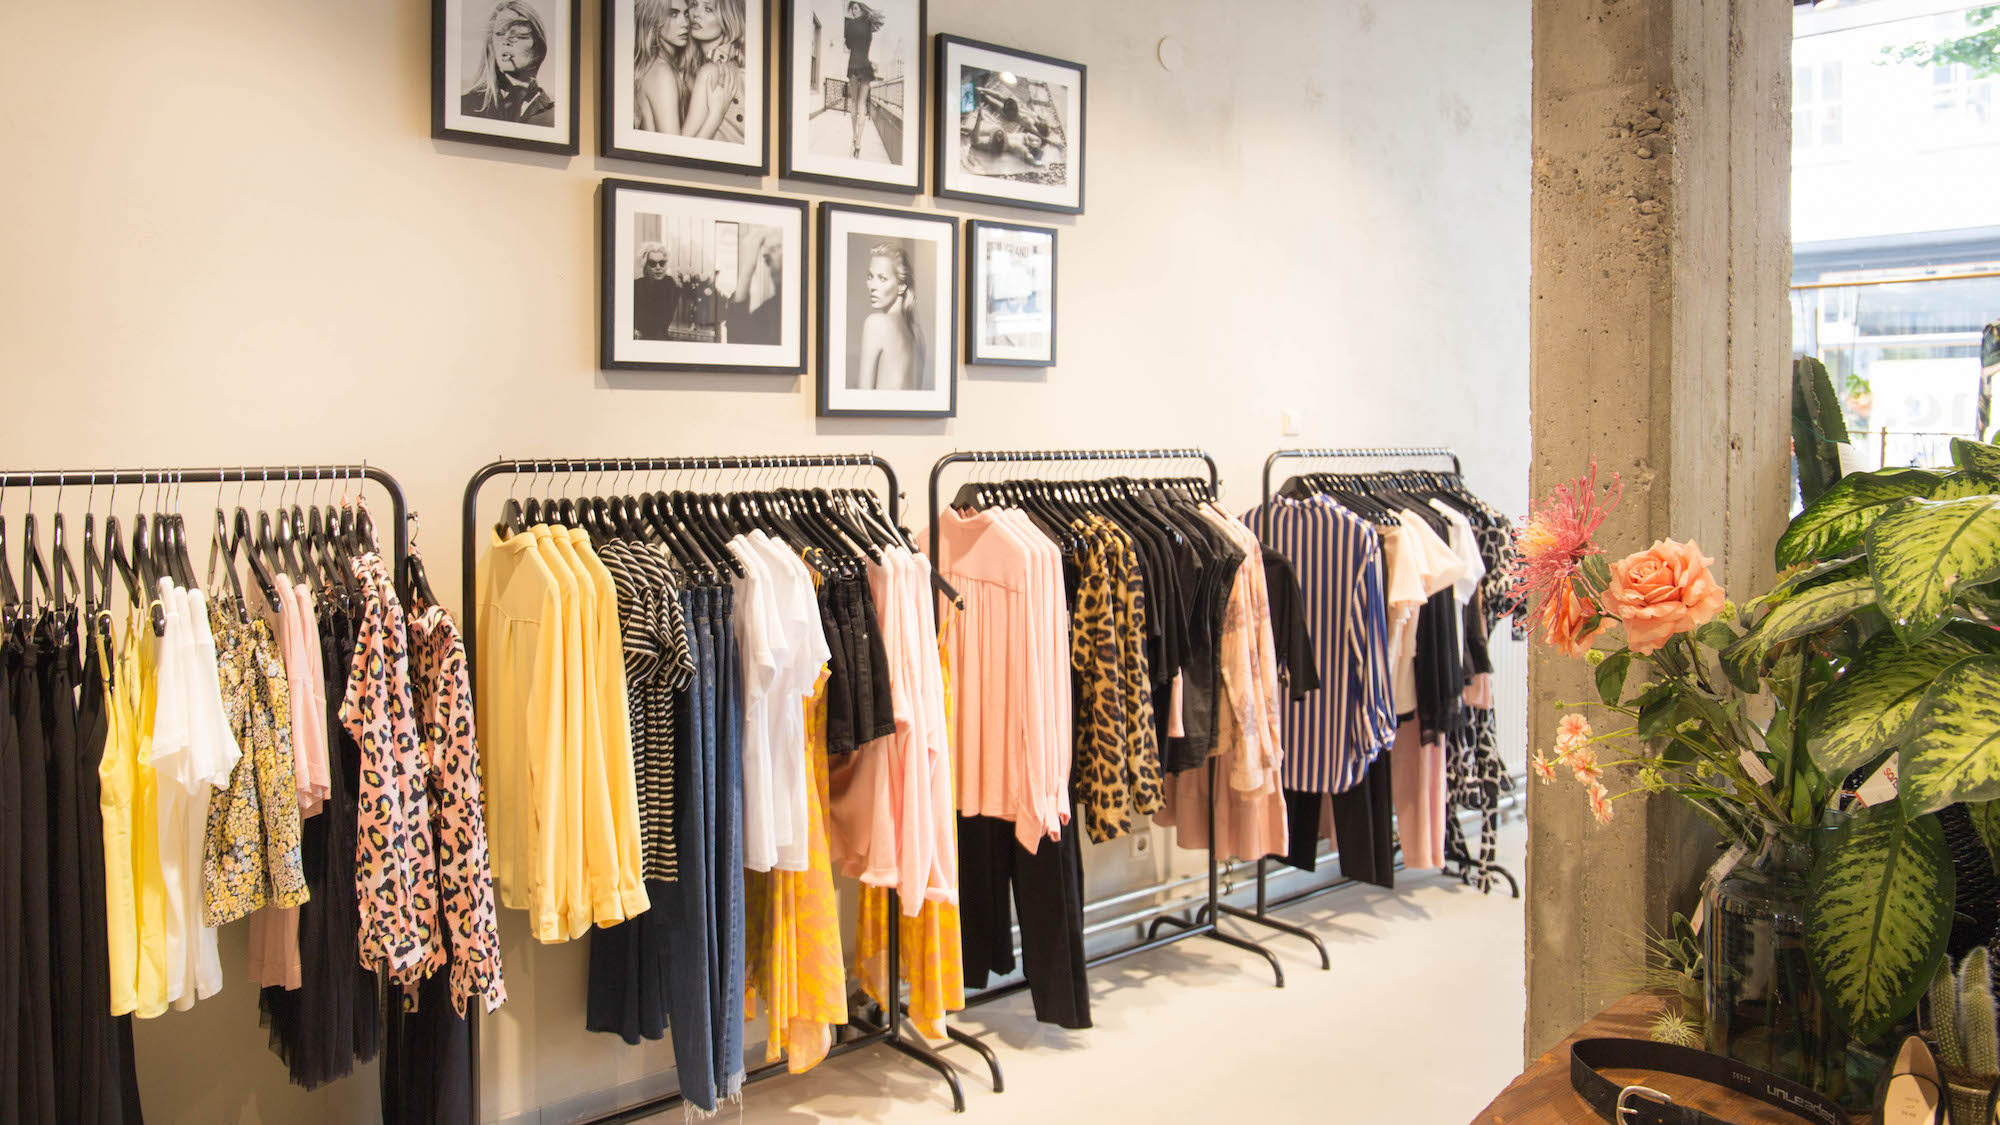 Unconventional Wardrobe: The Fashion Boutique